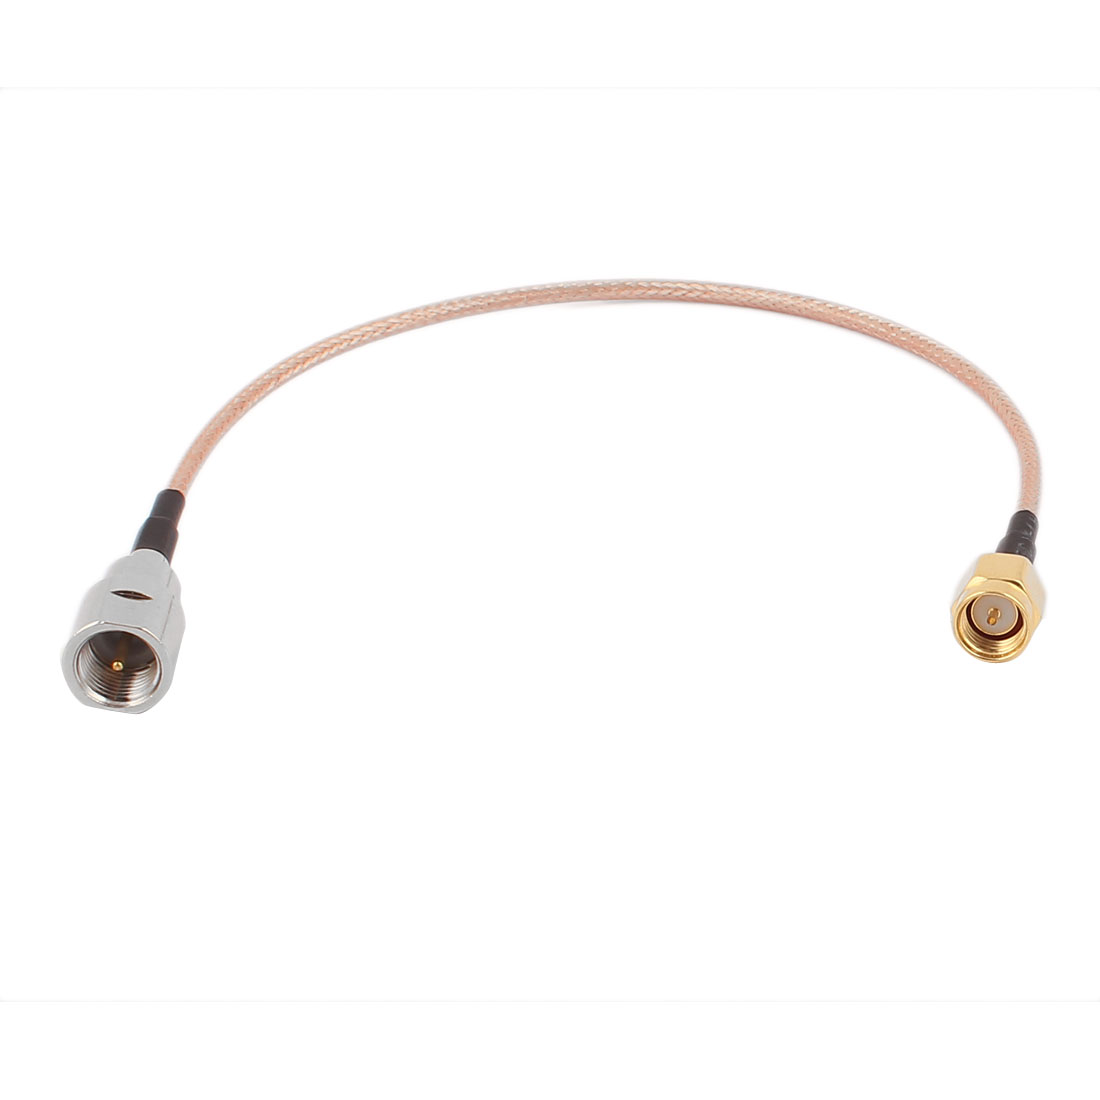 FME-J Male to SMA-J Male RG316 Coaxial Cable Pigtail 20cm